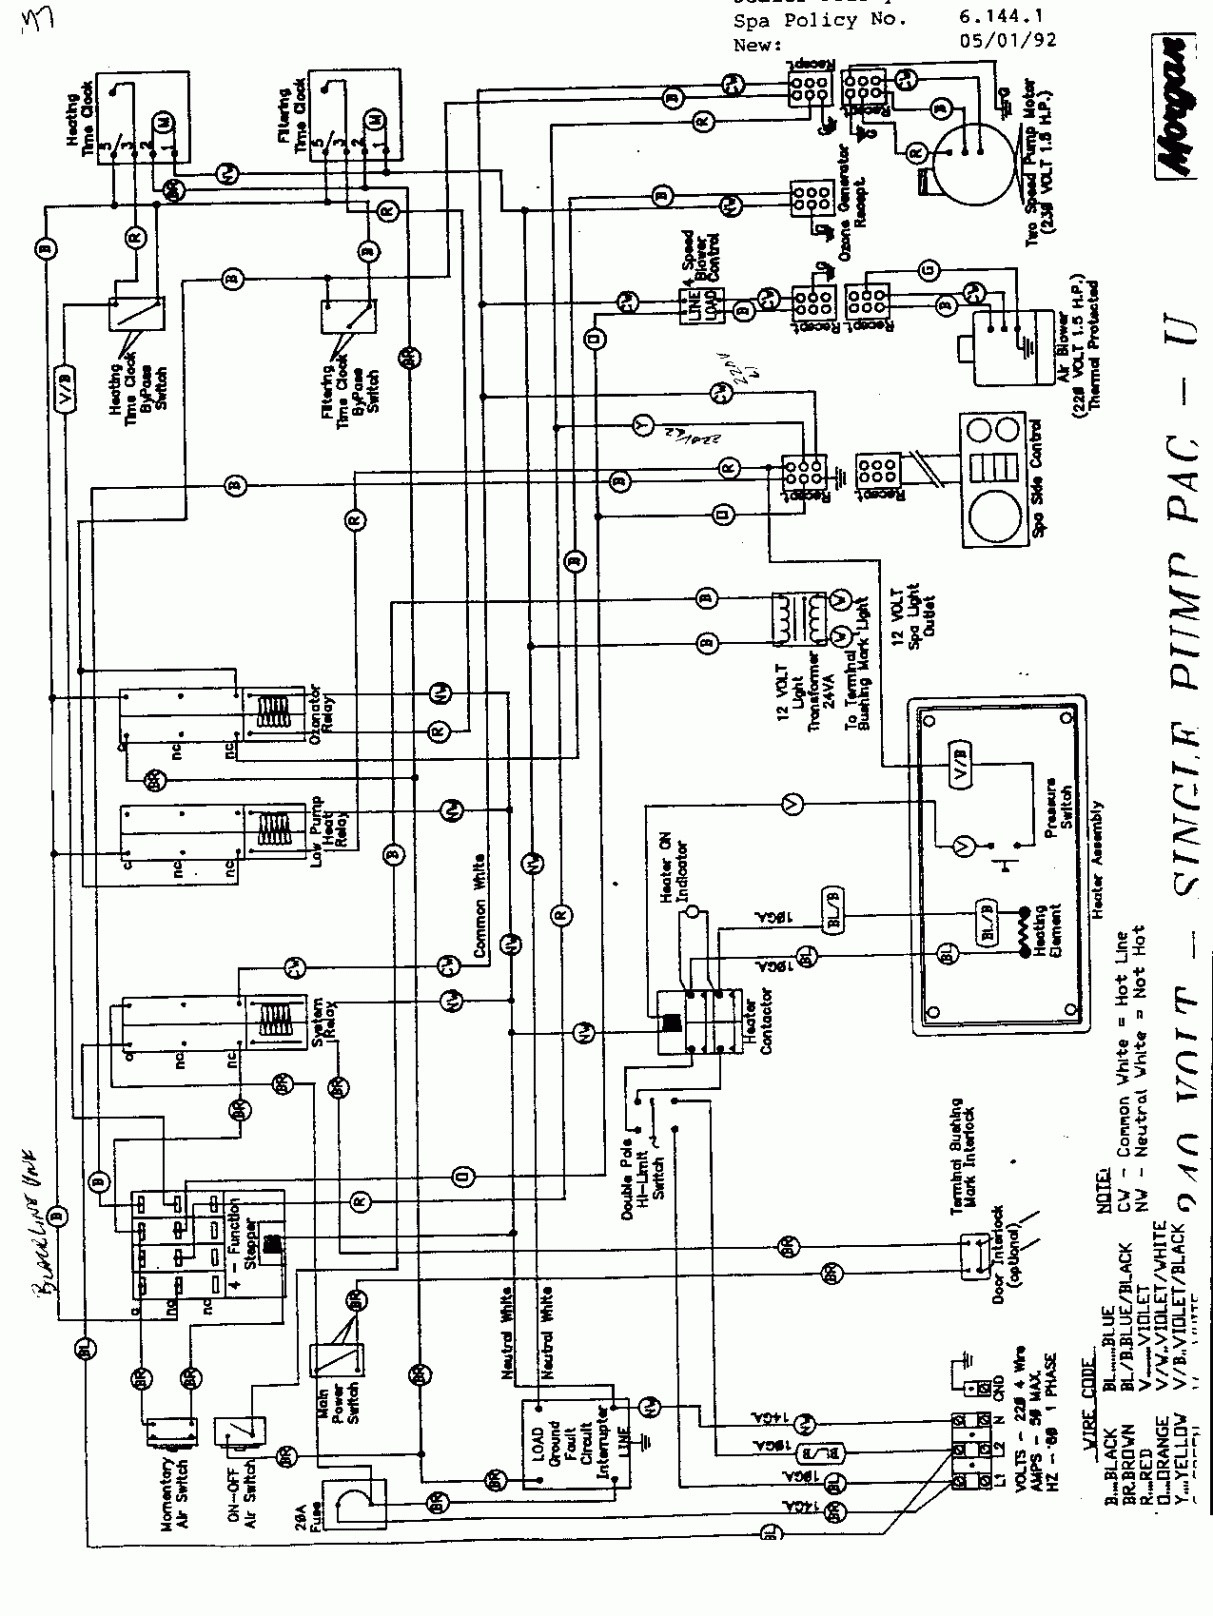 Diagram Garden Spa Wiring Diagram Full Version Hd Quality Wiring Diagram Xpresswiring Momentidifesta It